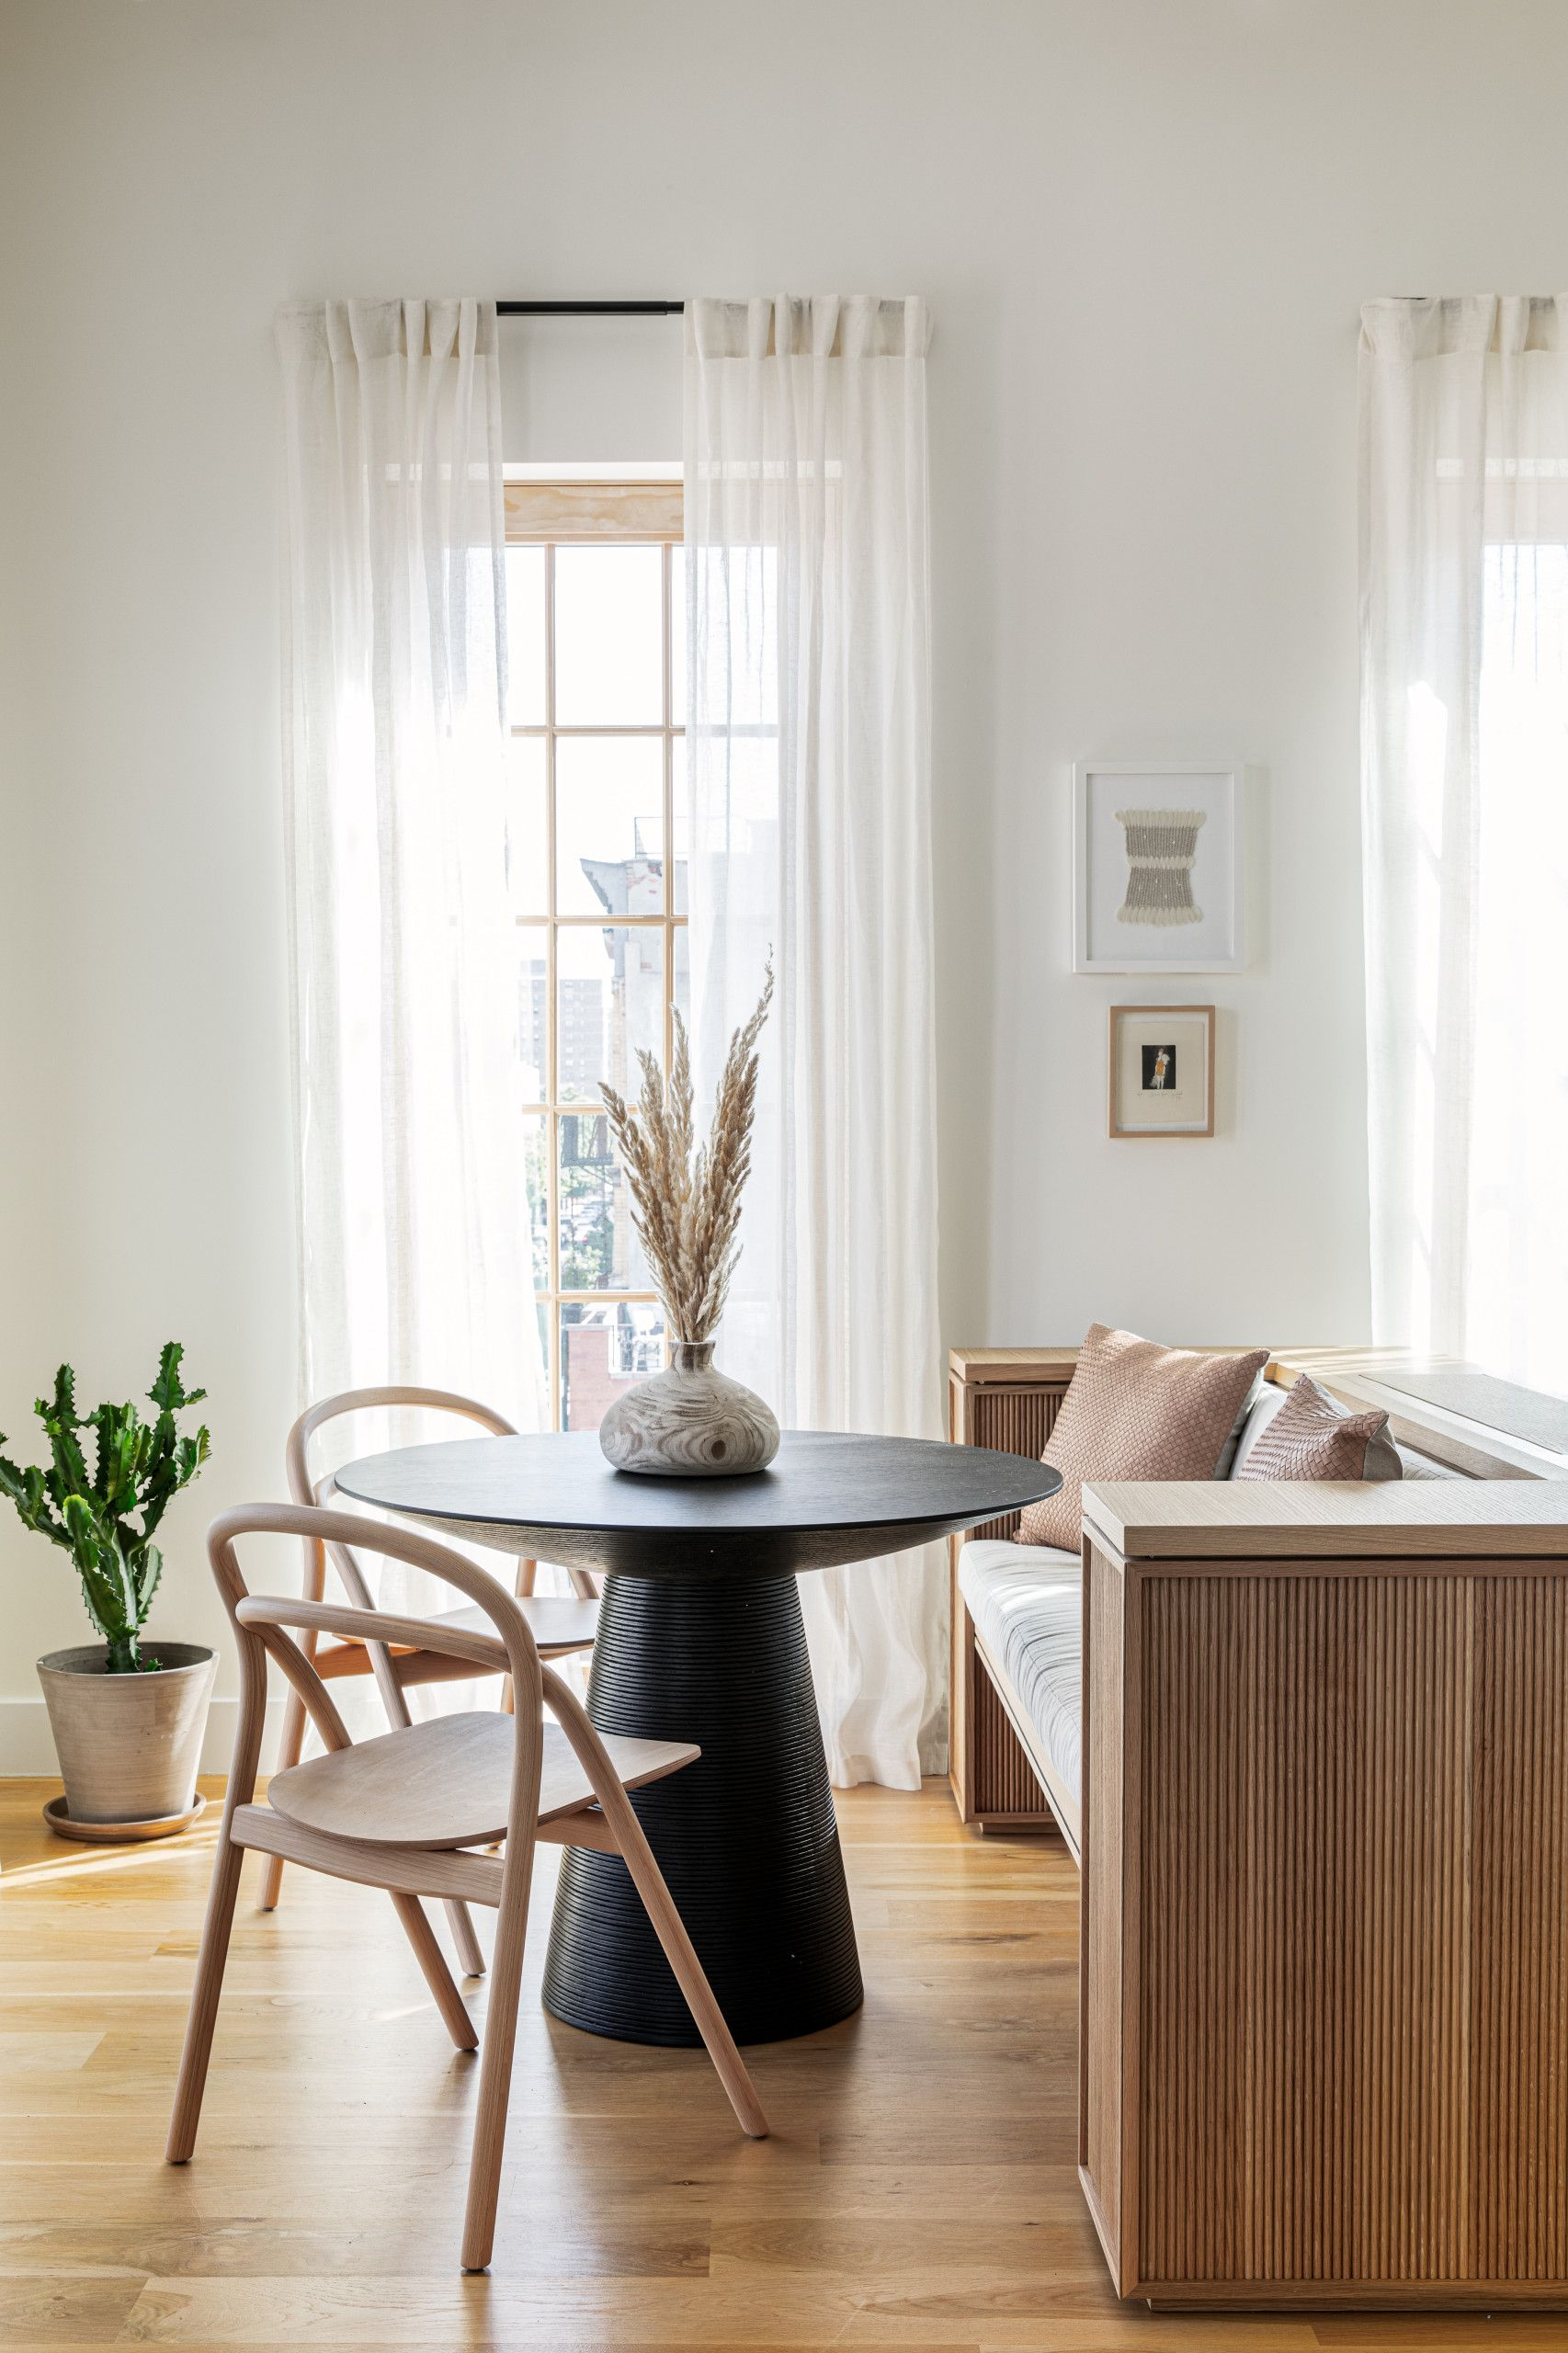 Best Small Dining Rooms From New York City Polished And Space Savvy Black Round Dining Table Dining Room Small Apartment Dining